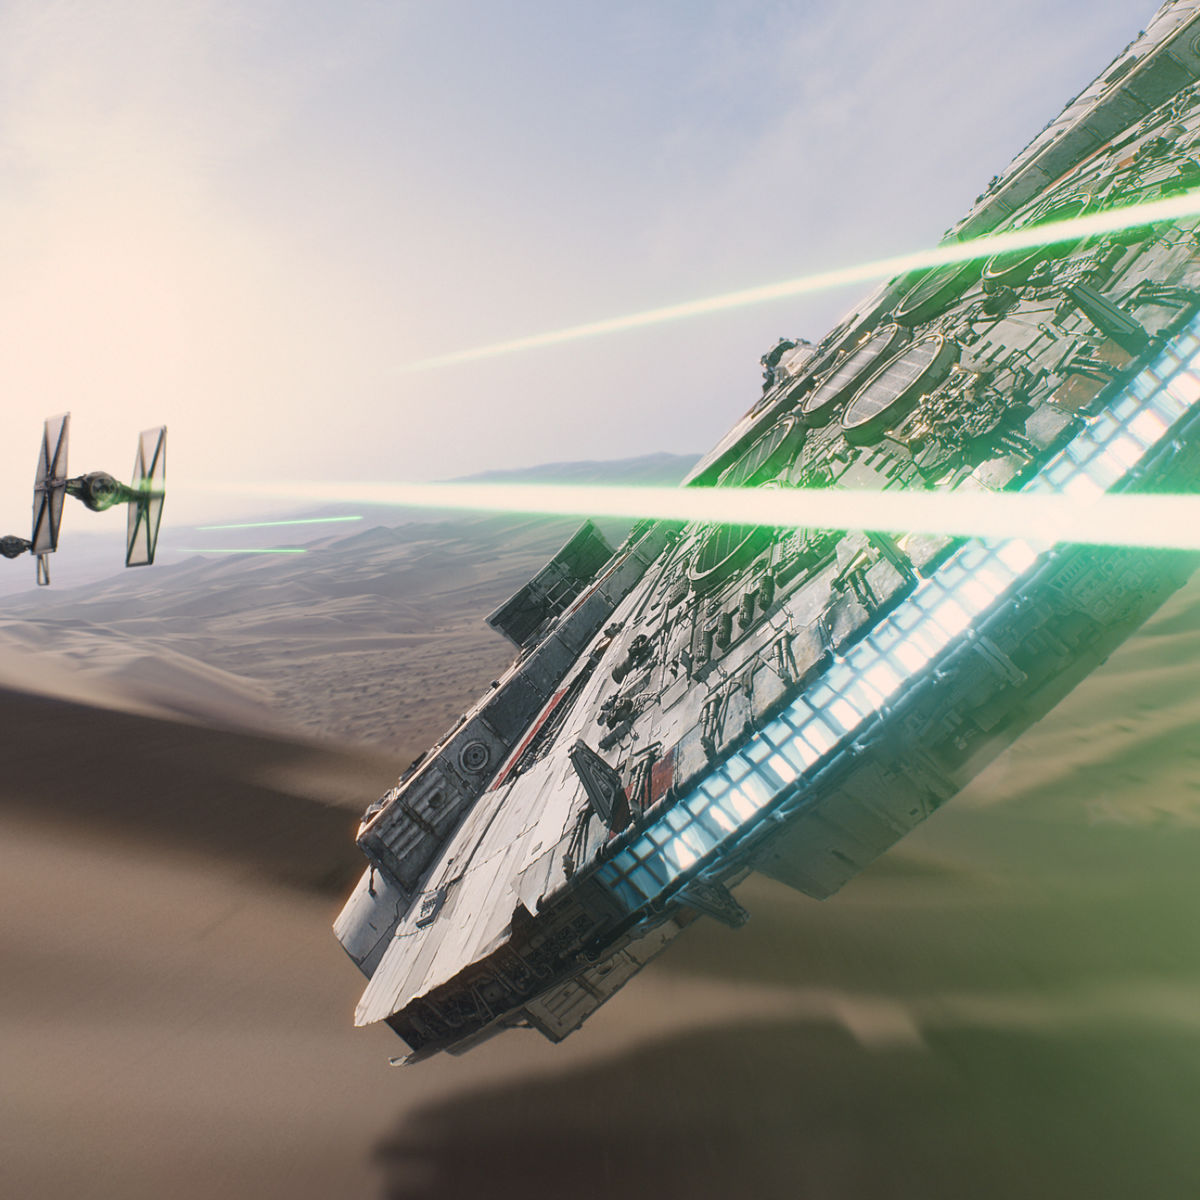 star-wars-the-force-awakens-millennium-falcon-imax_0.jpg